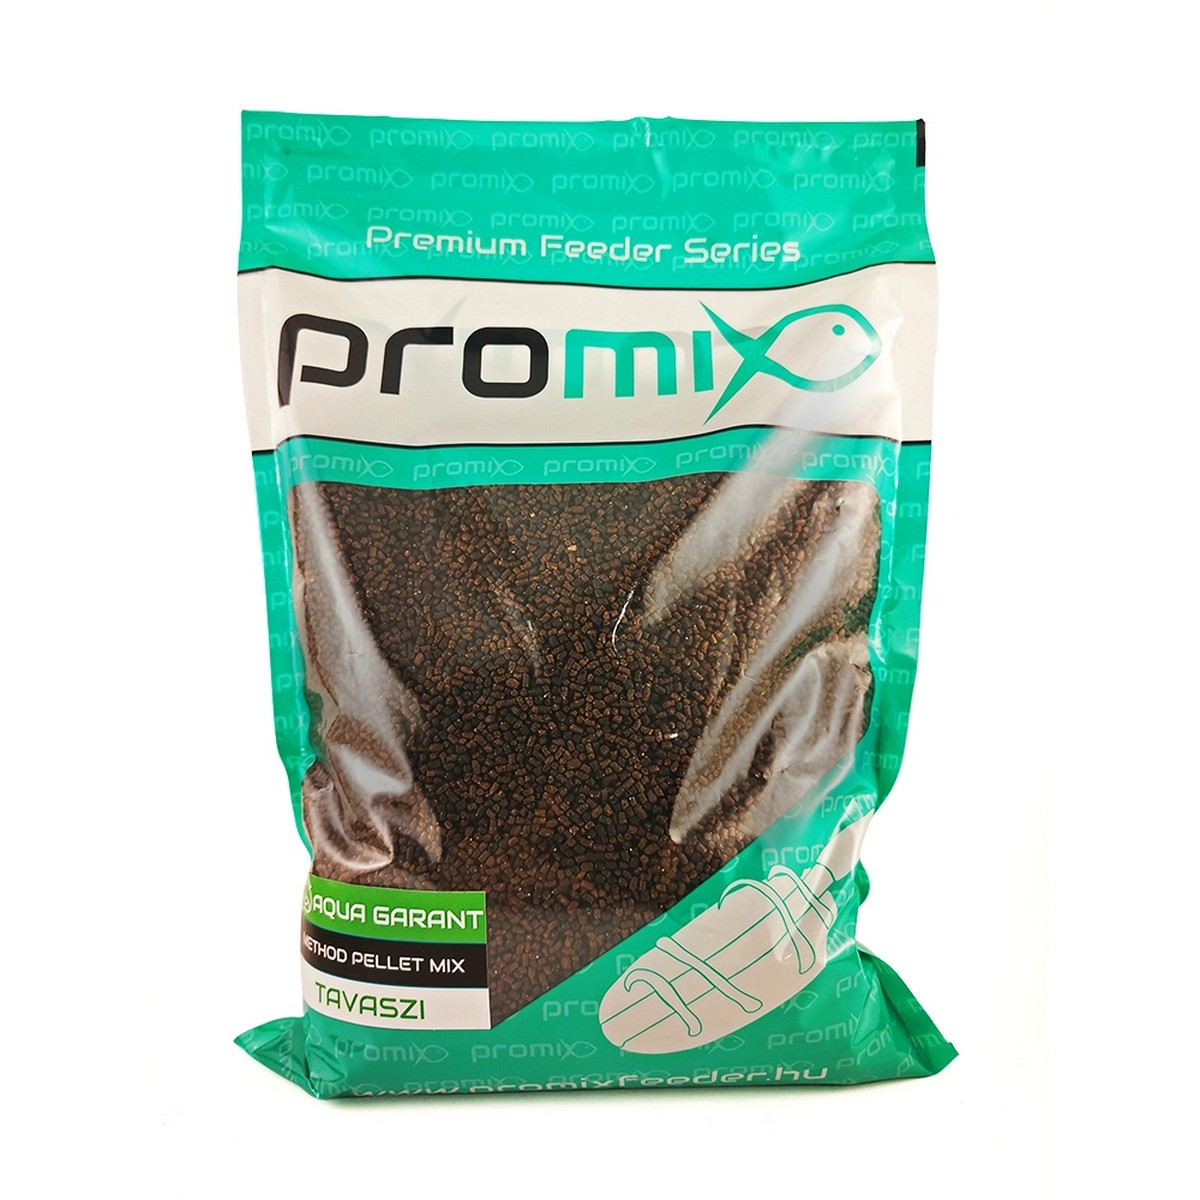 PROMIX AQUA GARANT METHOD PELLET MIX TAVASZI 800G